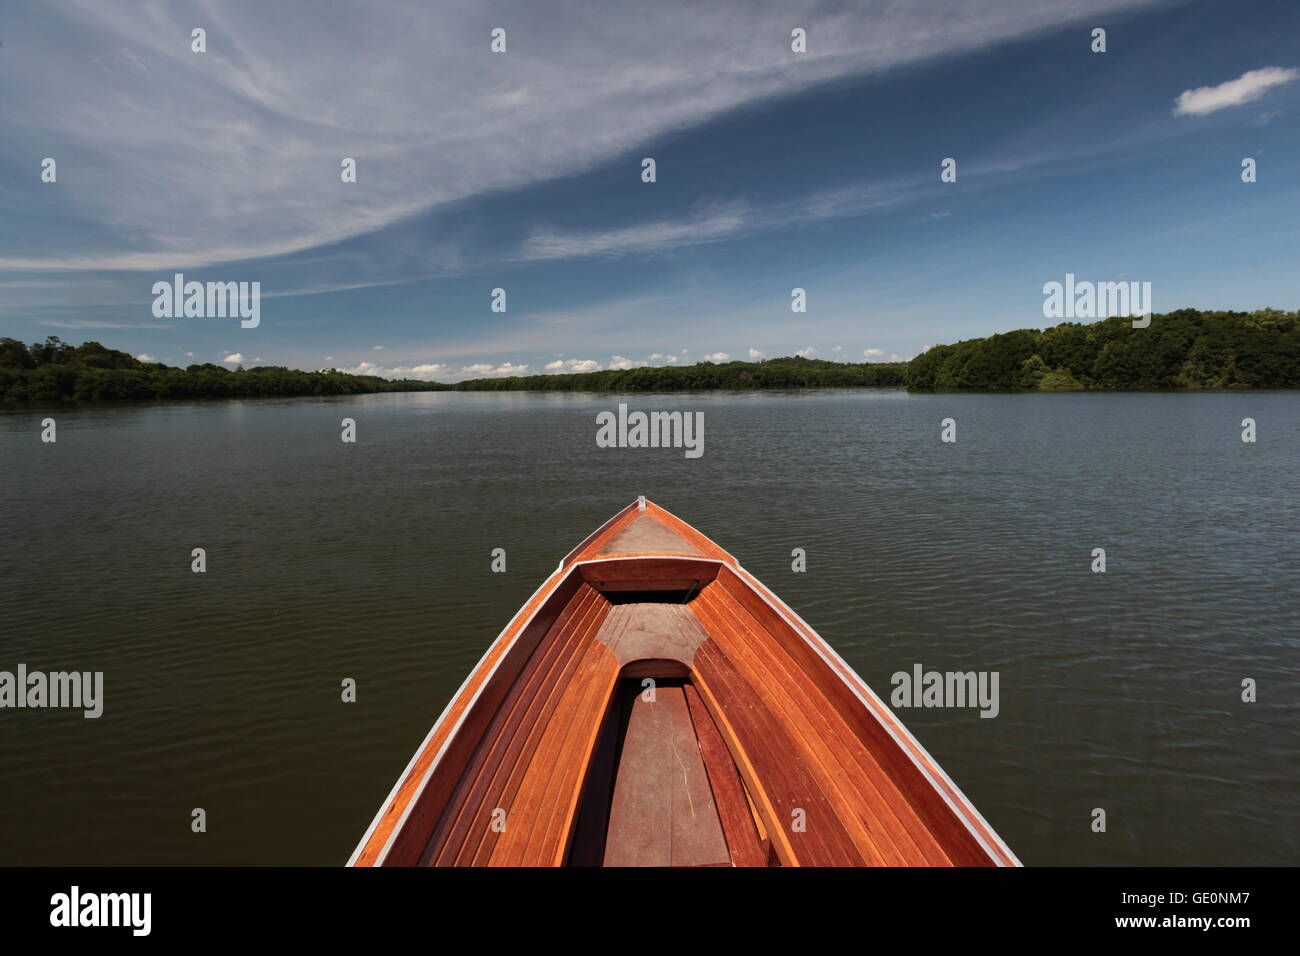 the landscape of the lagoon near the city of Bandar seri Begawan in the country of Brunei Darussalam on Borneo in - Stock Image